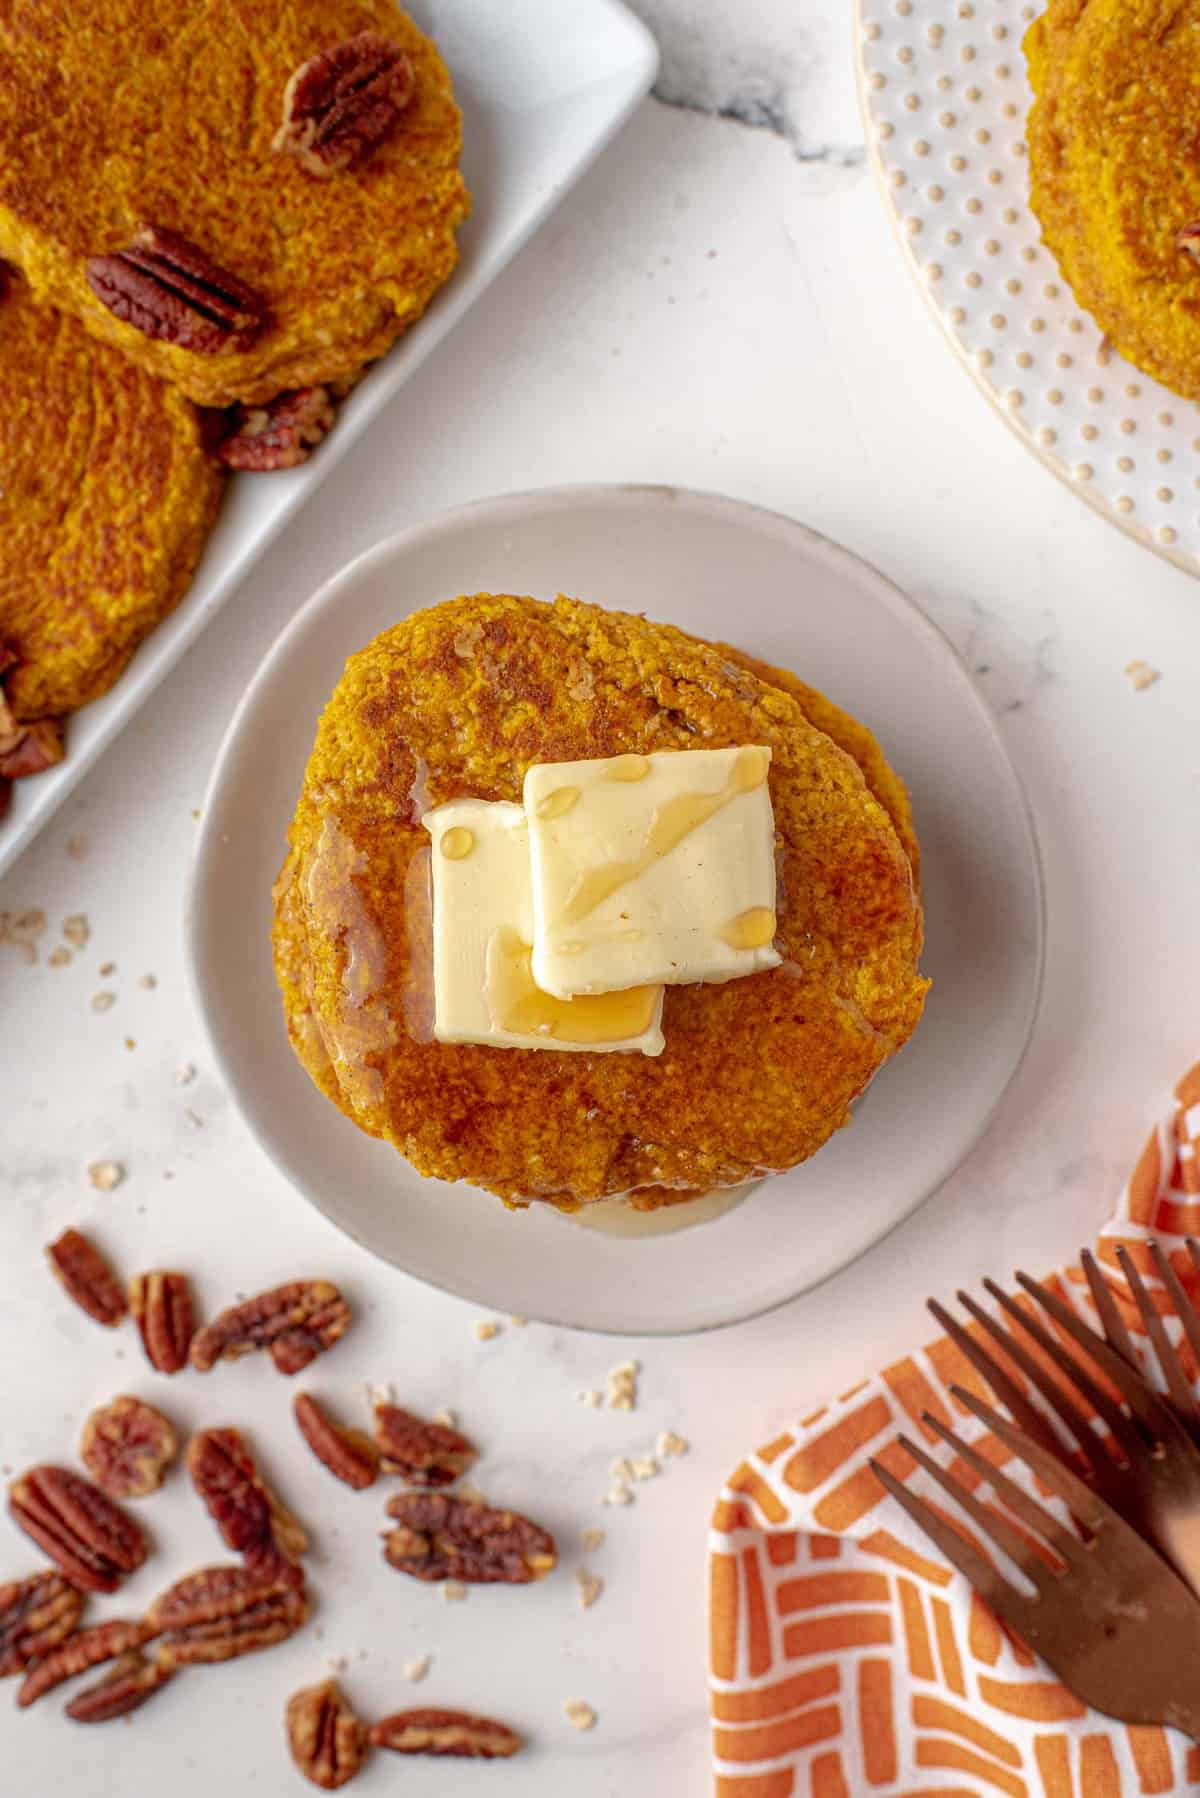 Overhead view of pumpkin pancakes with butter on top.